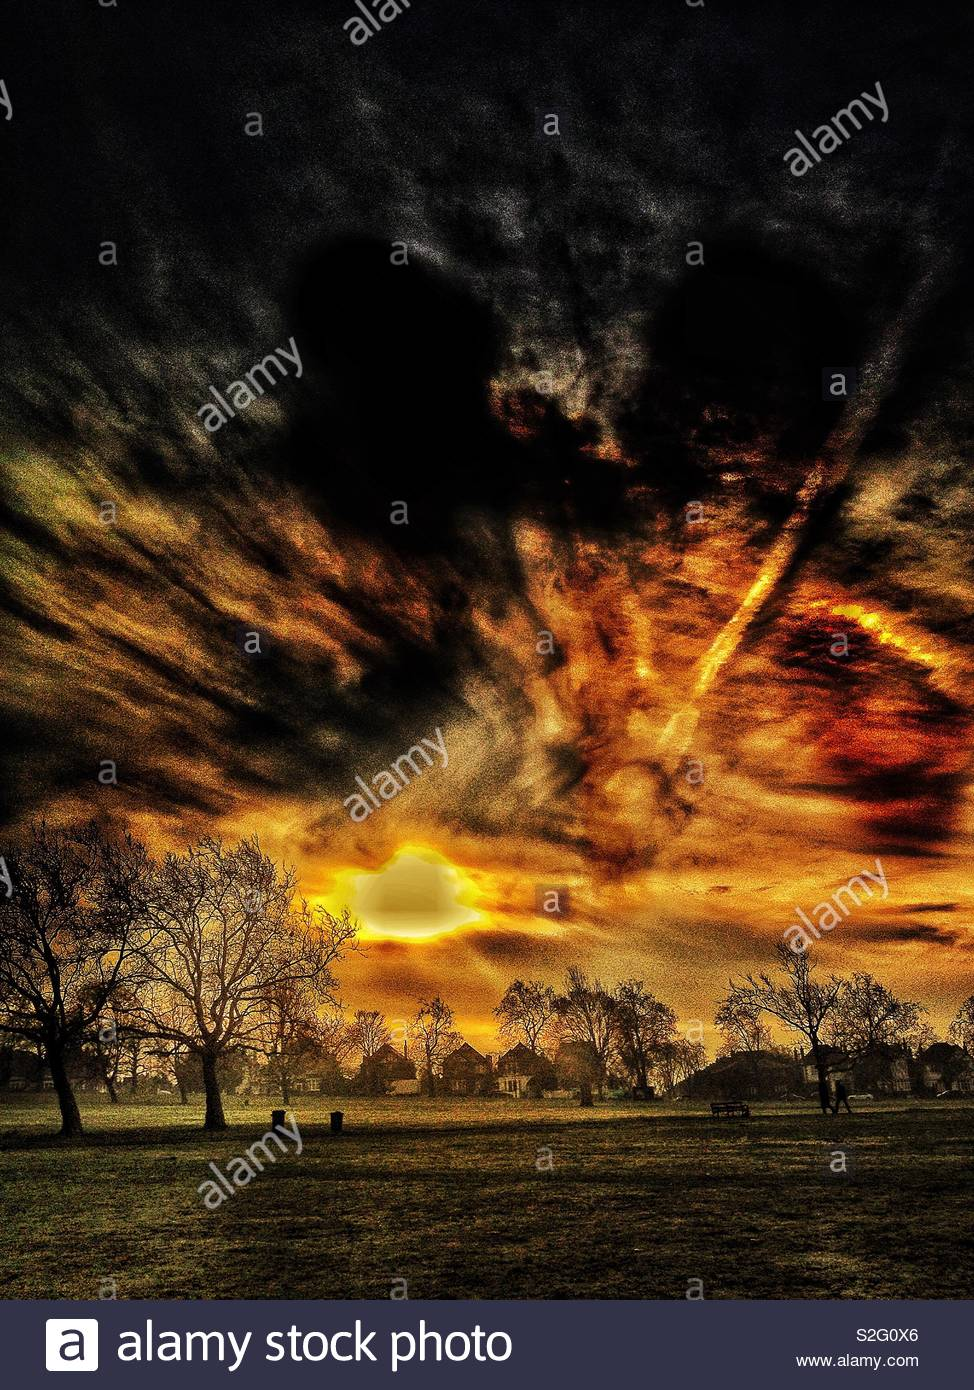 Stylised dramatic winter storm clouds over an open field in suburban London - Stock Image